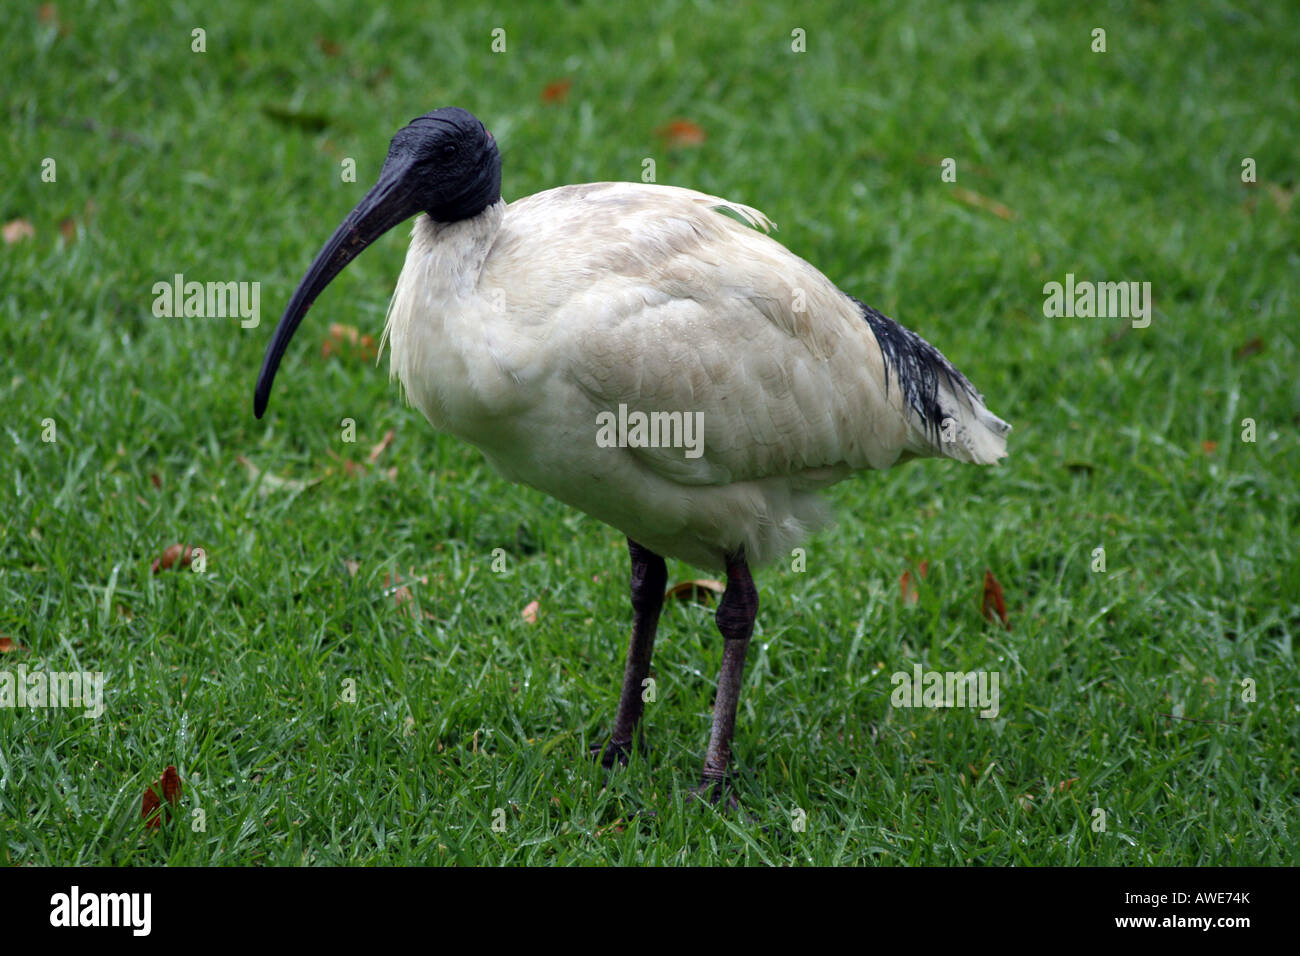 Australian White Ibis  [Royal Botanic Gardens, Farm Cove, Circular Quay, Sydney Harbour, Sydney, NSW, Australia] Stock Photo